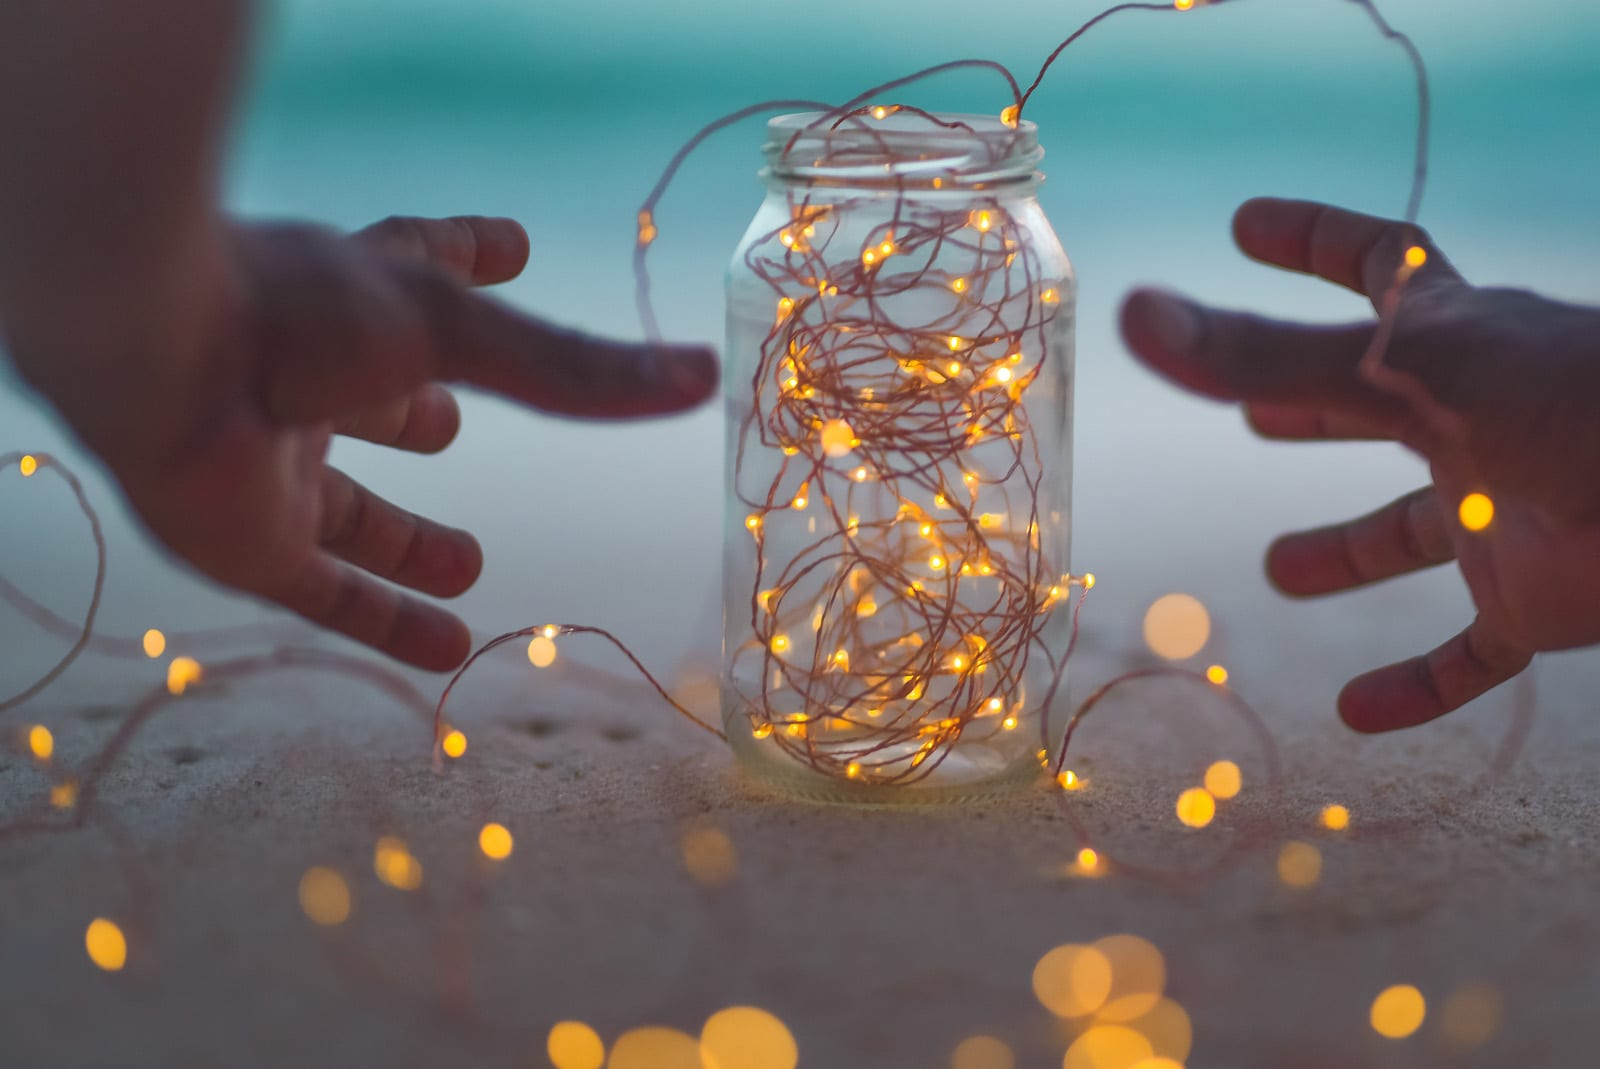 Image of fairy lights in a jar with hands